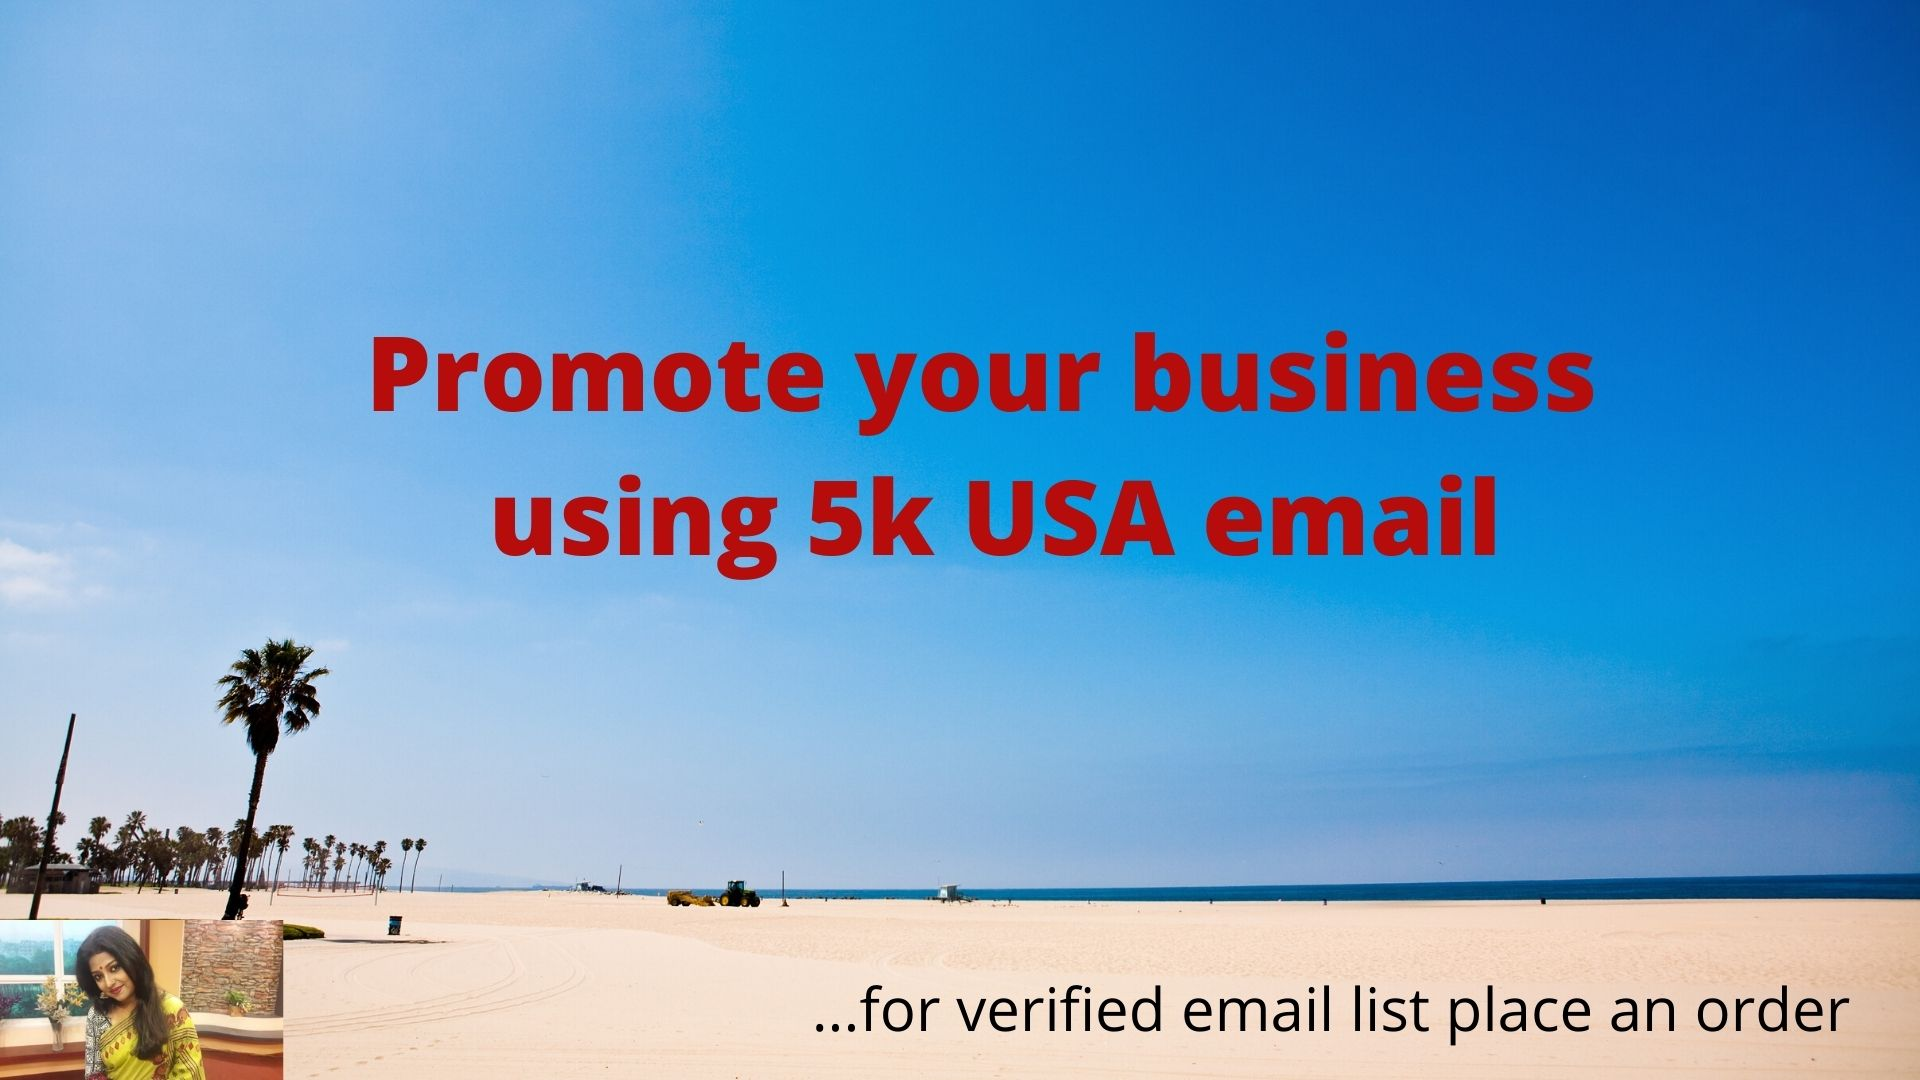 You can get 5k verified email list from me.